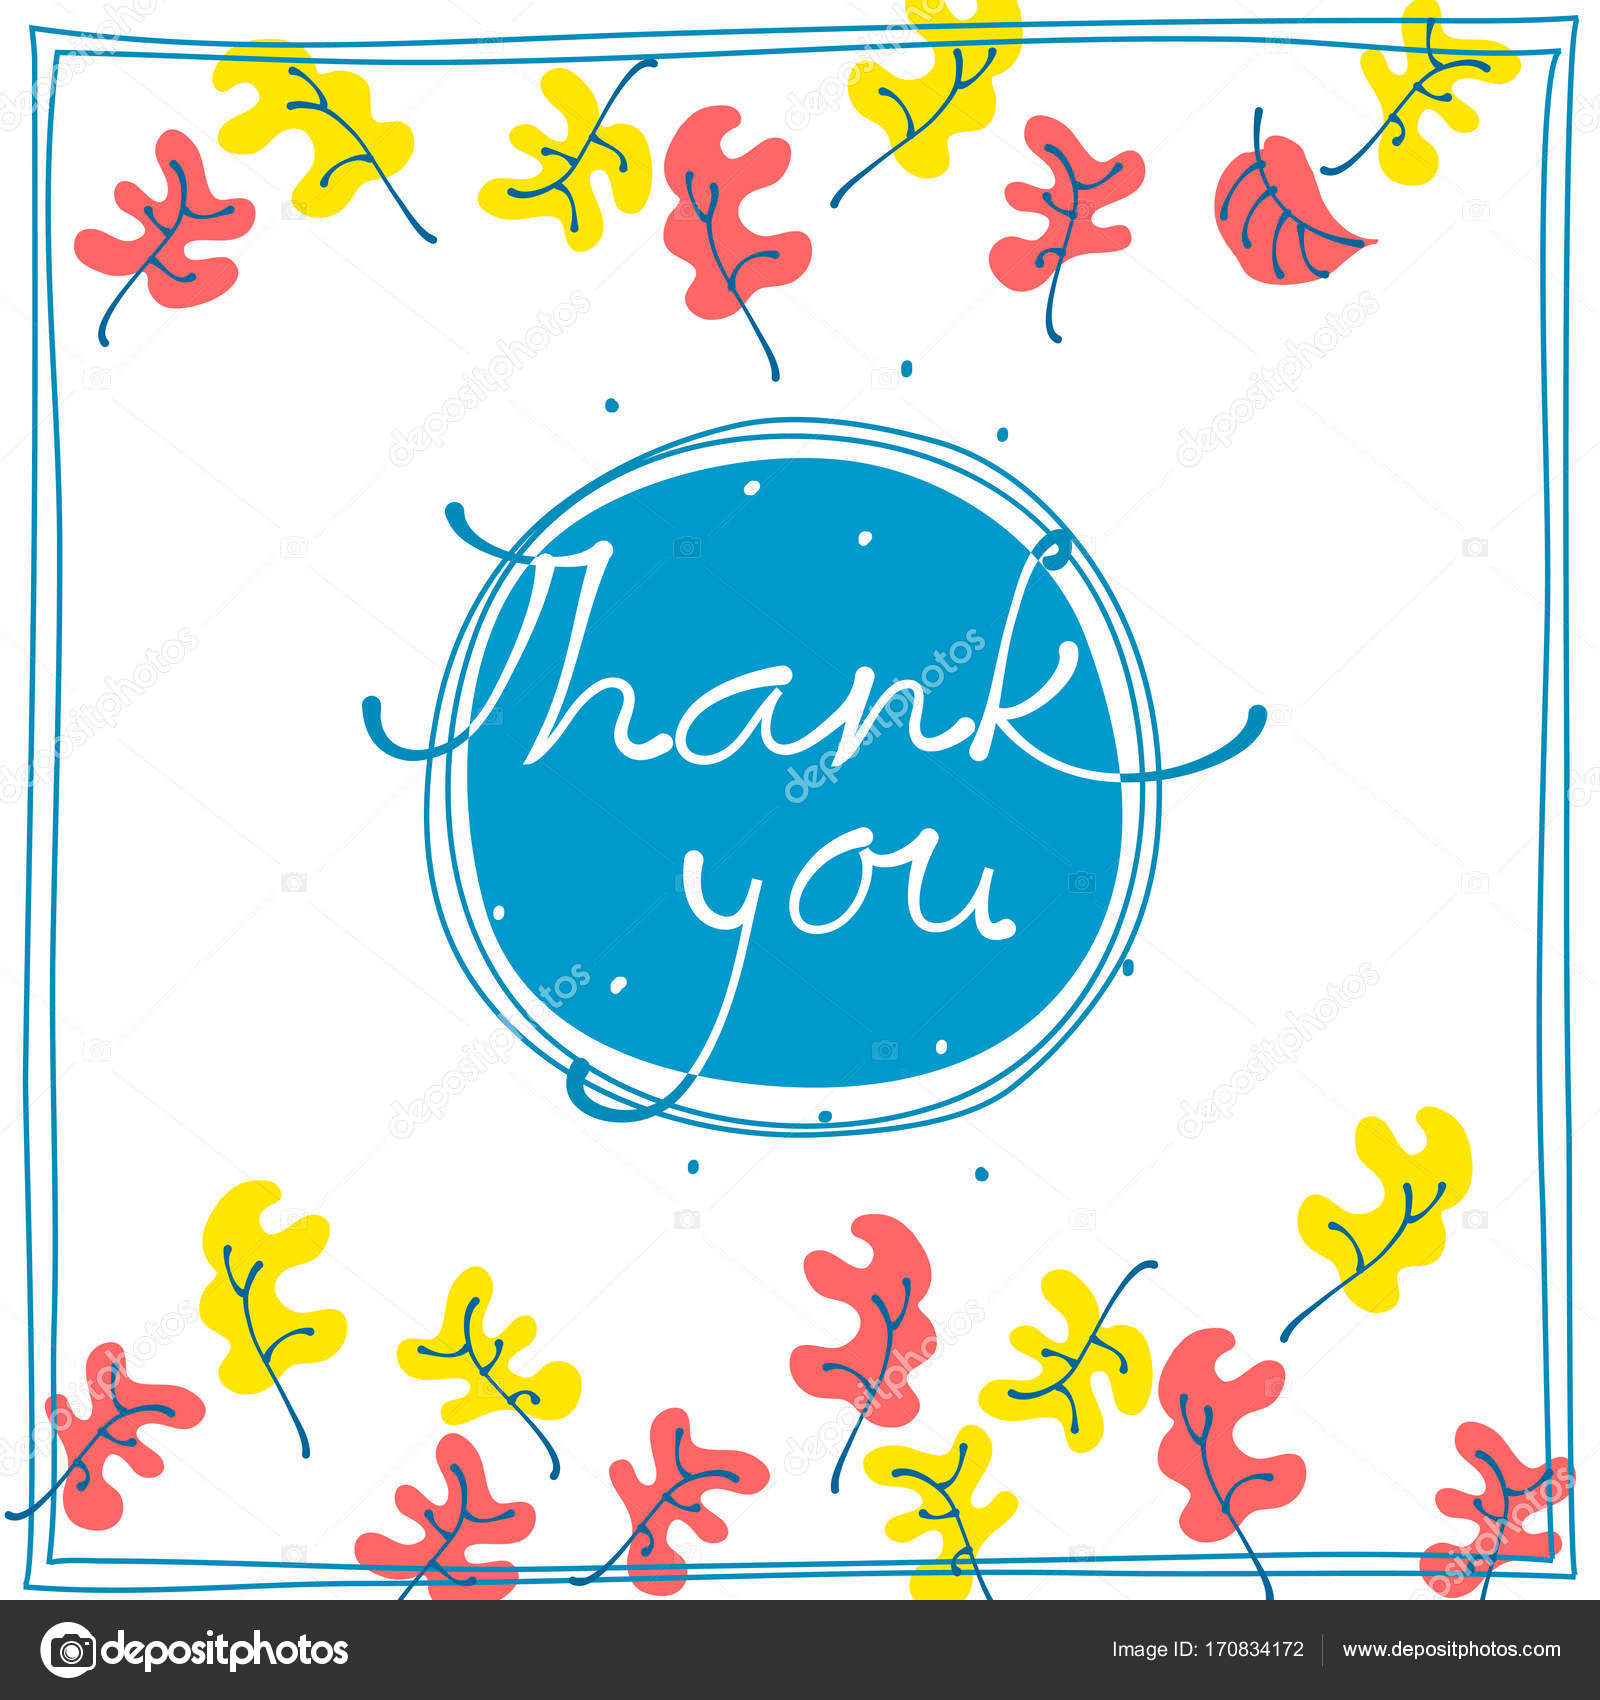 Thank you card design template simple greeting card autumn motif thank you card design template simple greeting card autumn motif stock vector spiritdancerdesigns Choice Image